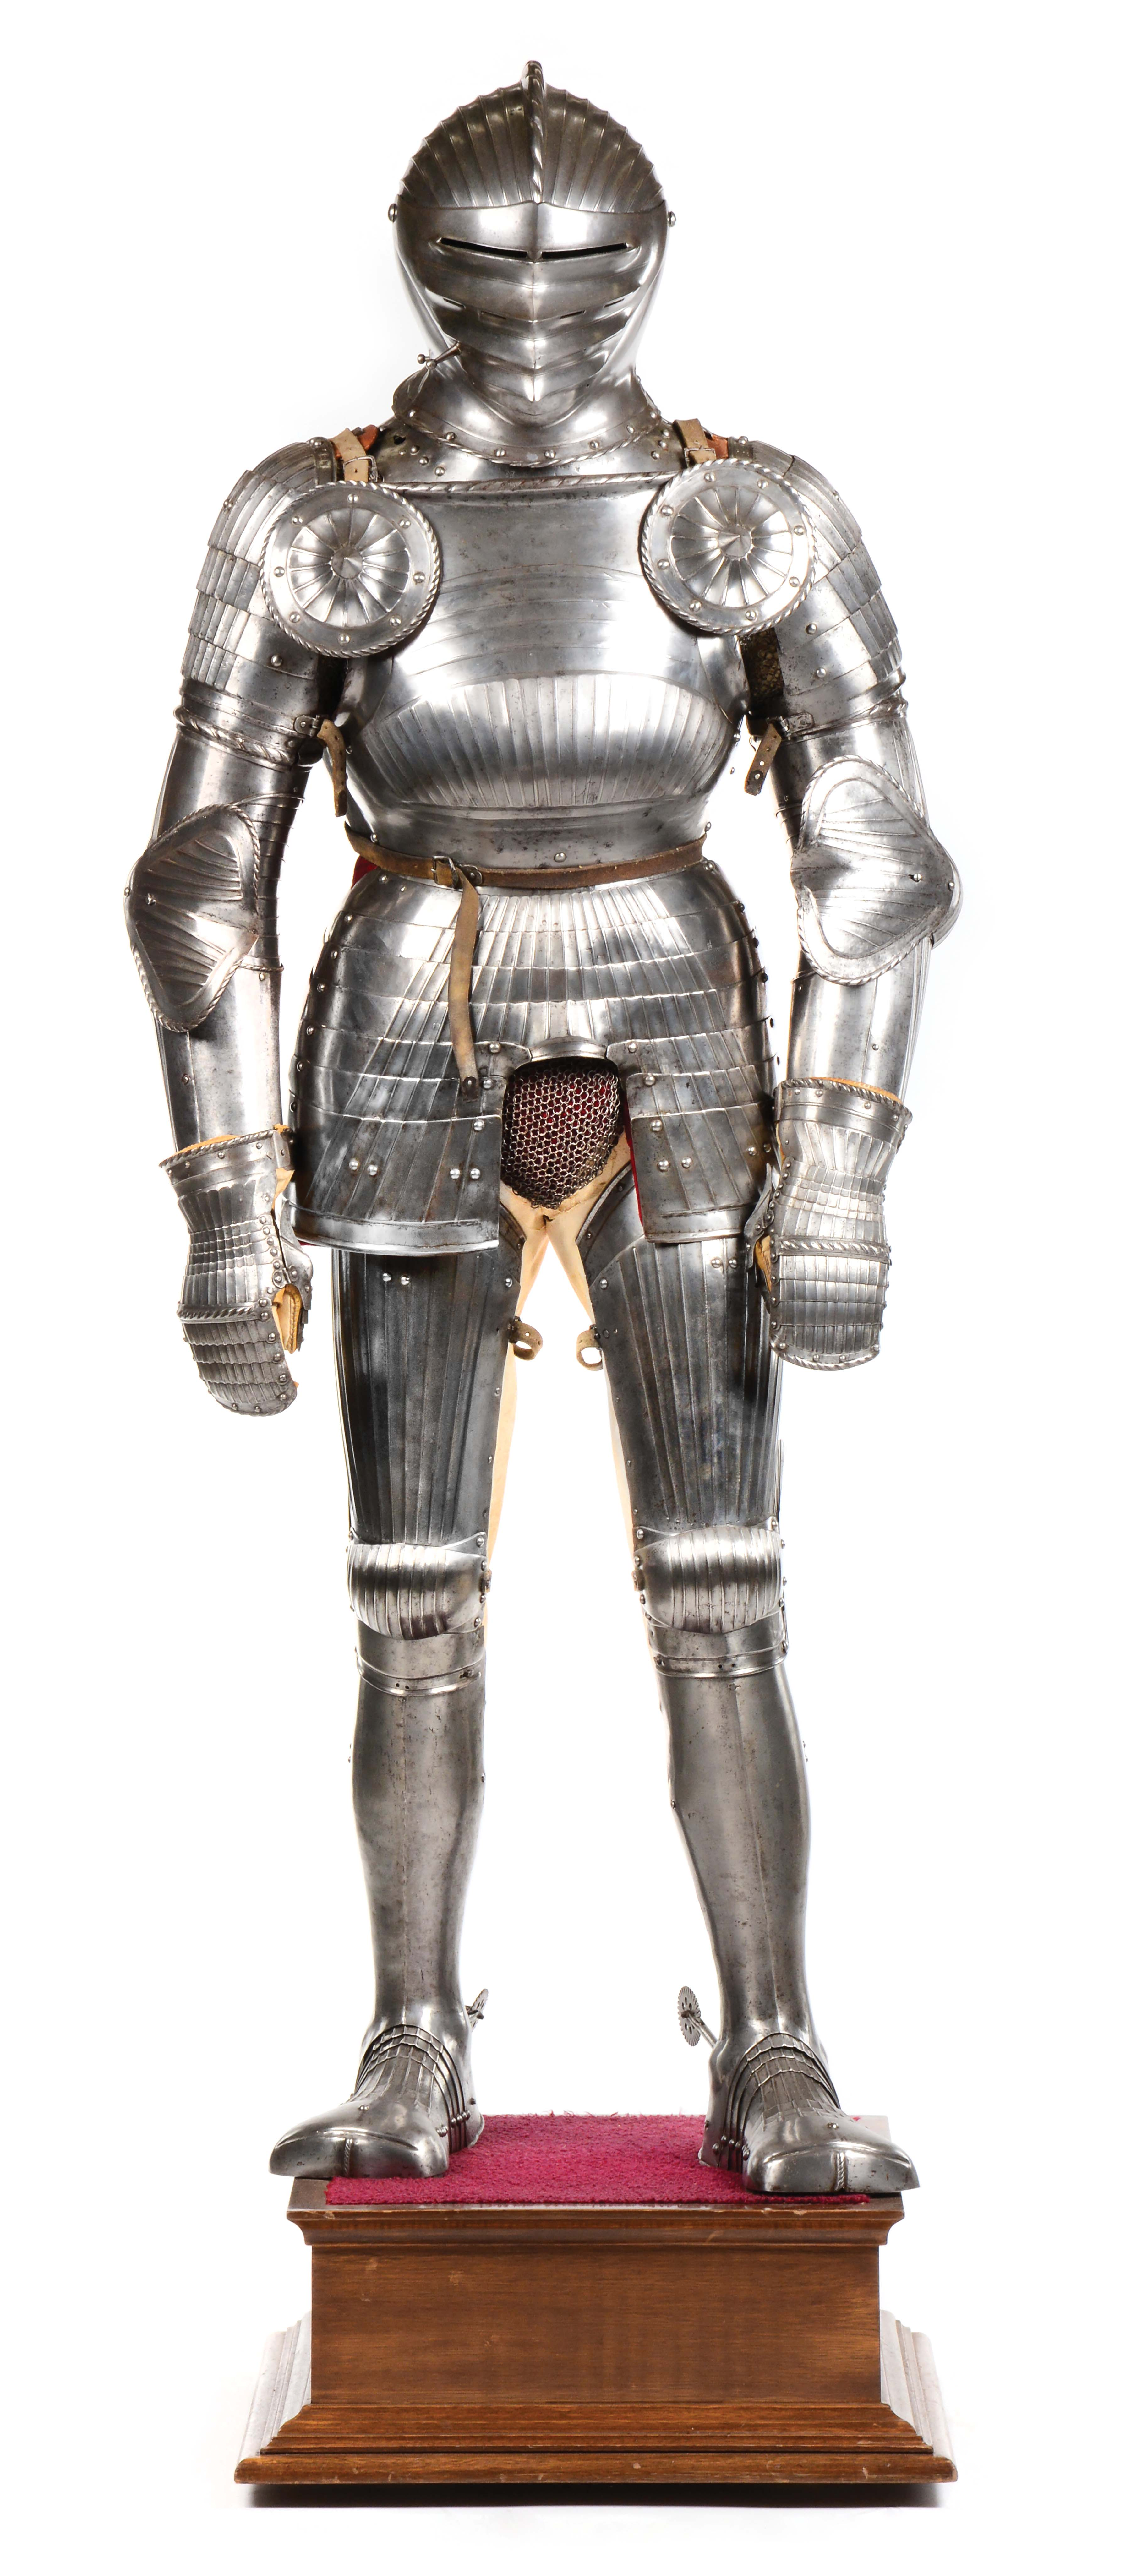 FINE AND RARE WELL-MOUNTED COMPOSITE MAXIMILIAN SUIT OF ARMOR.